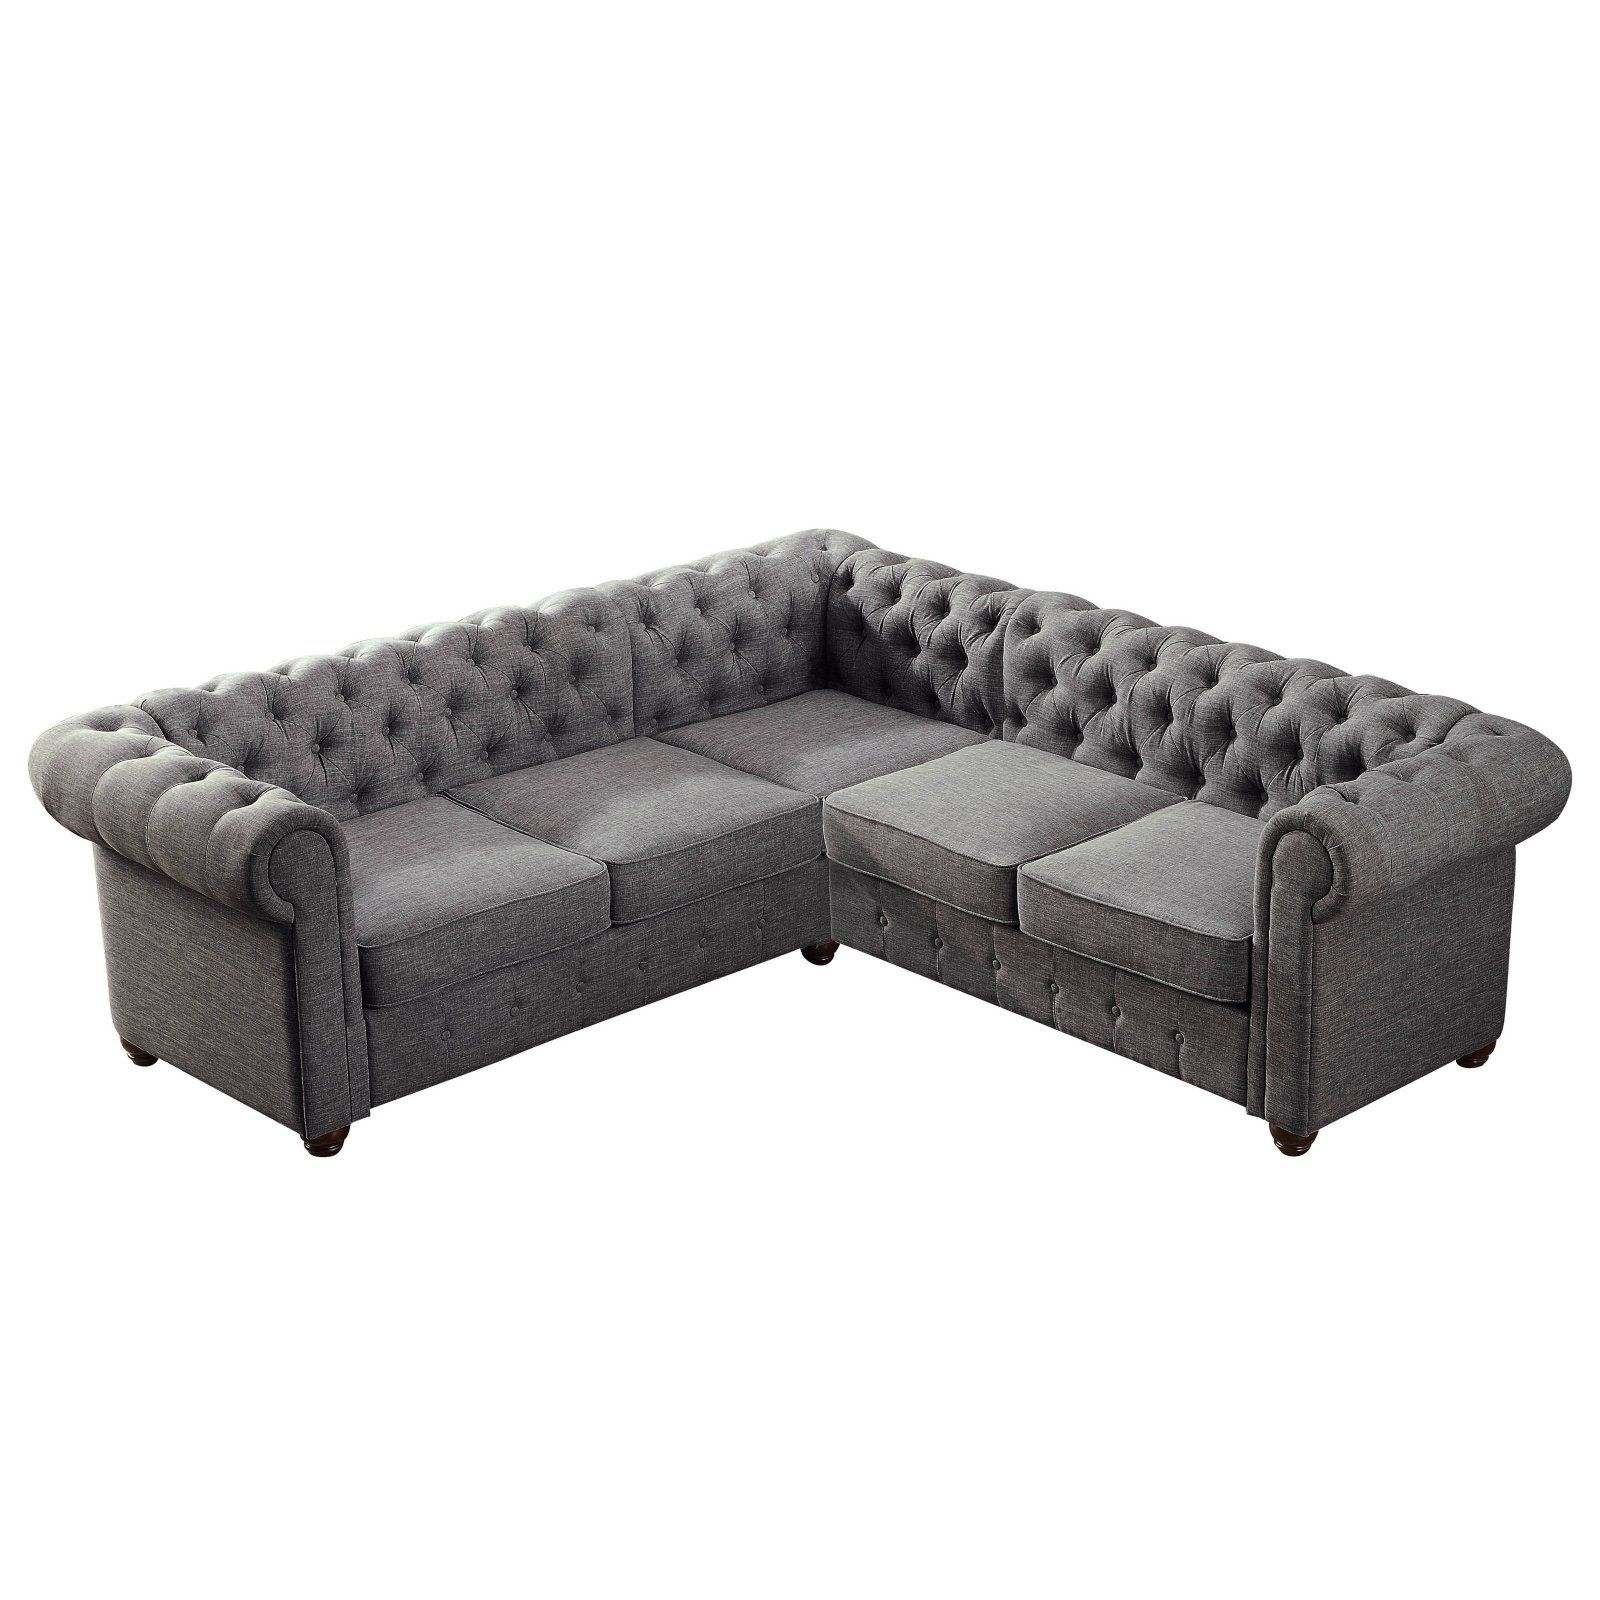 Rosevera Quitaque L-Shaped Tufted Sectional Sofa Gray ...